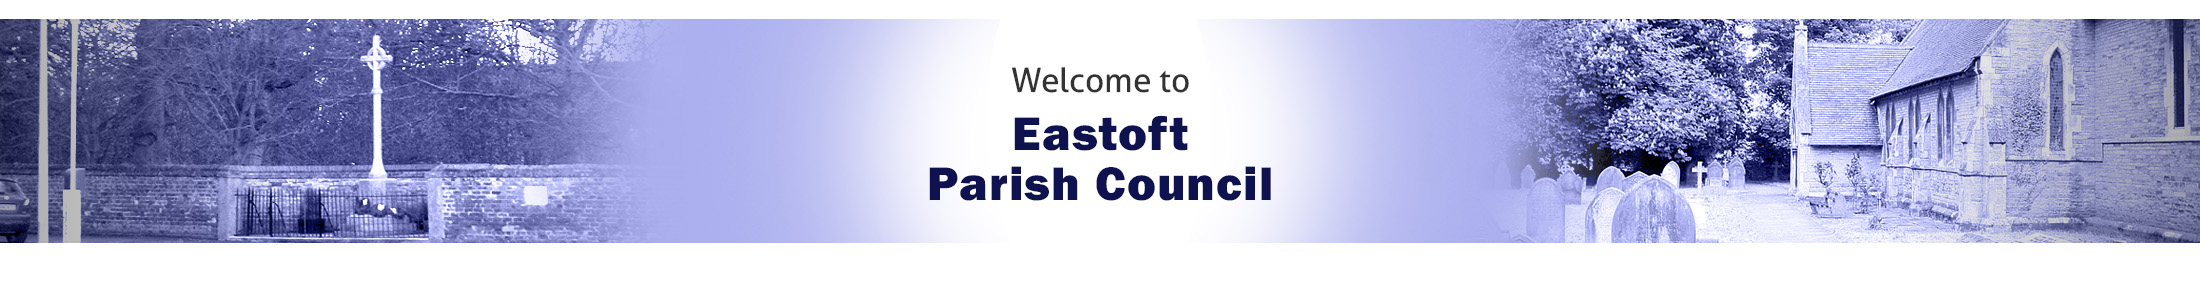 Header Image for Eastoft Parish Council